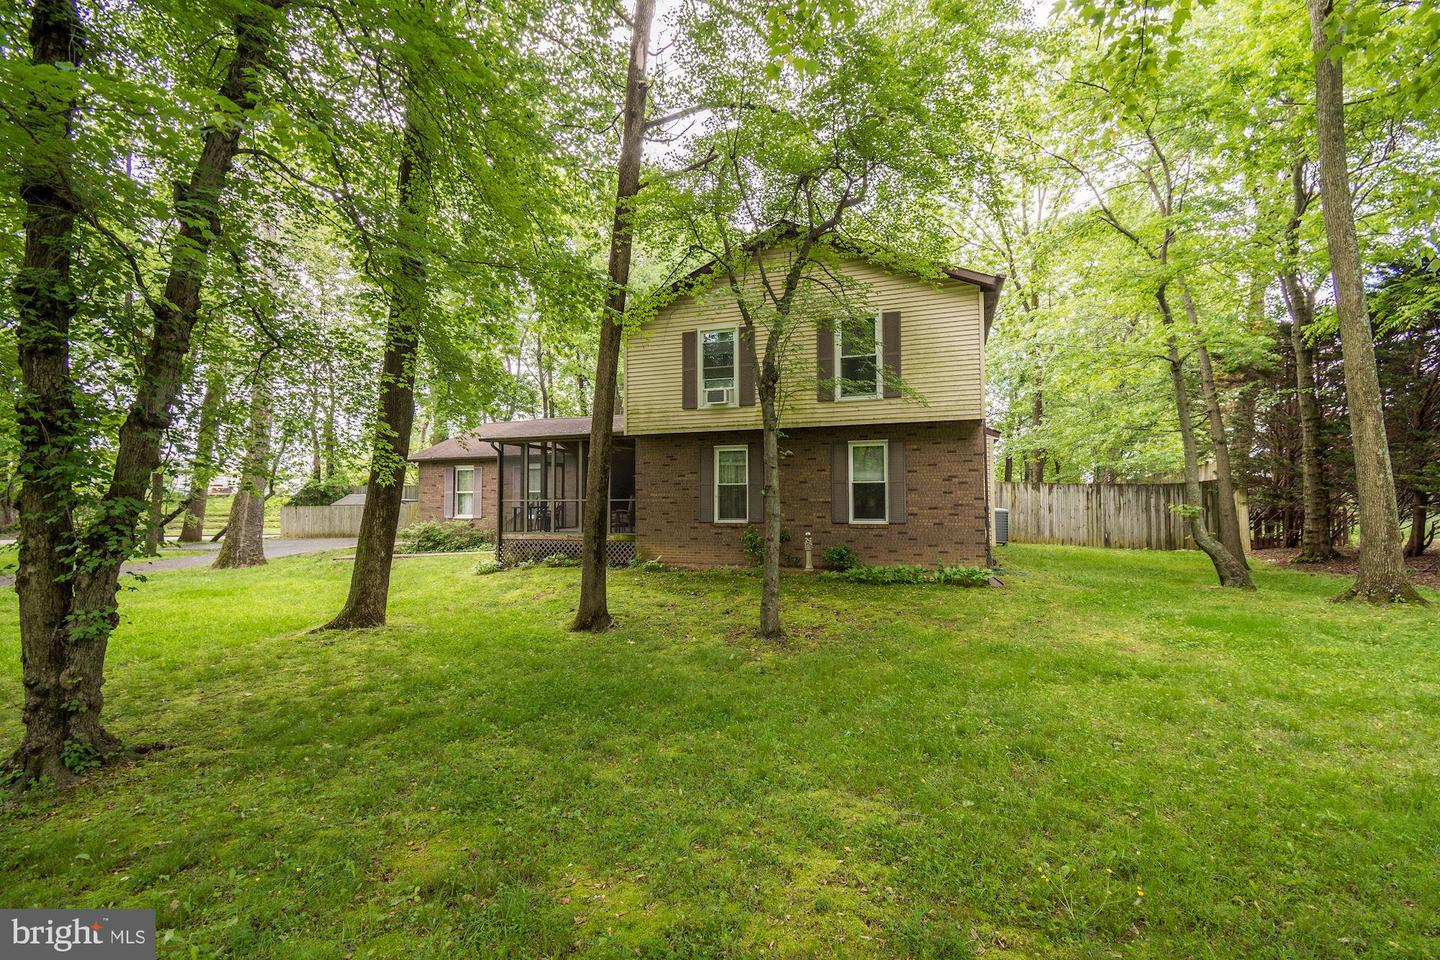 11 Old Mill Bottom Rd N                                                                               Annapolis                                                                      , MD - $1,300,000